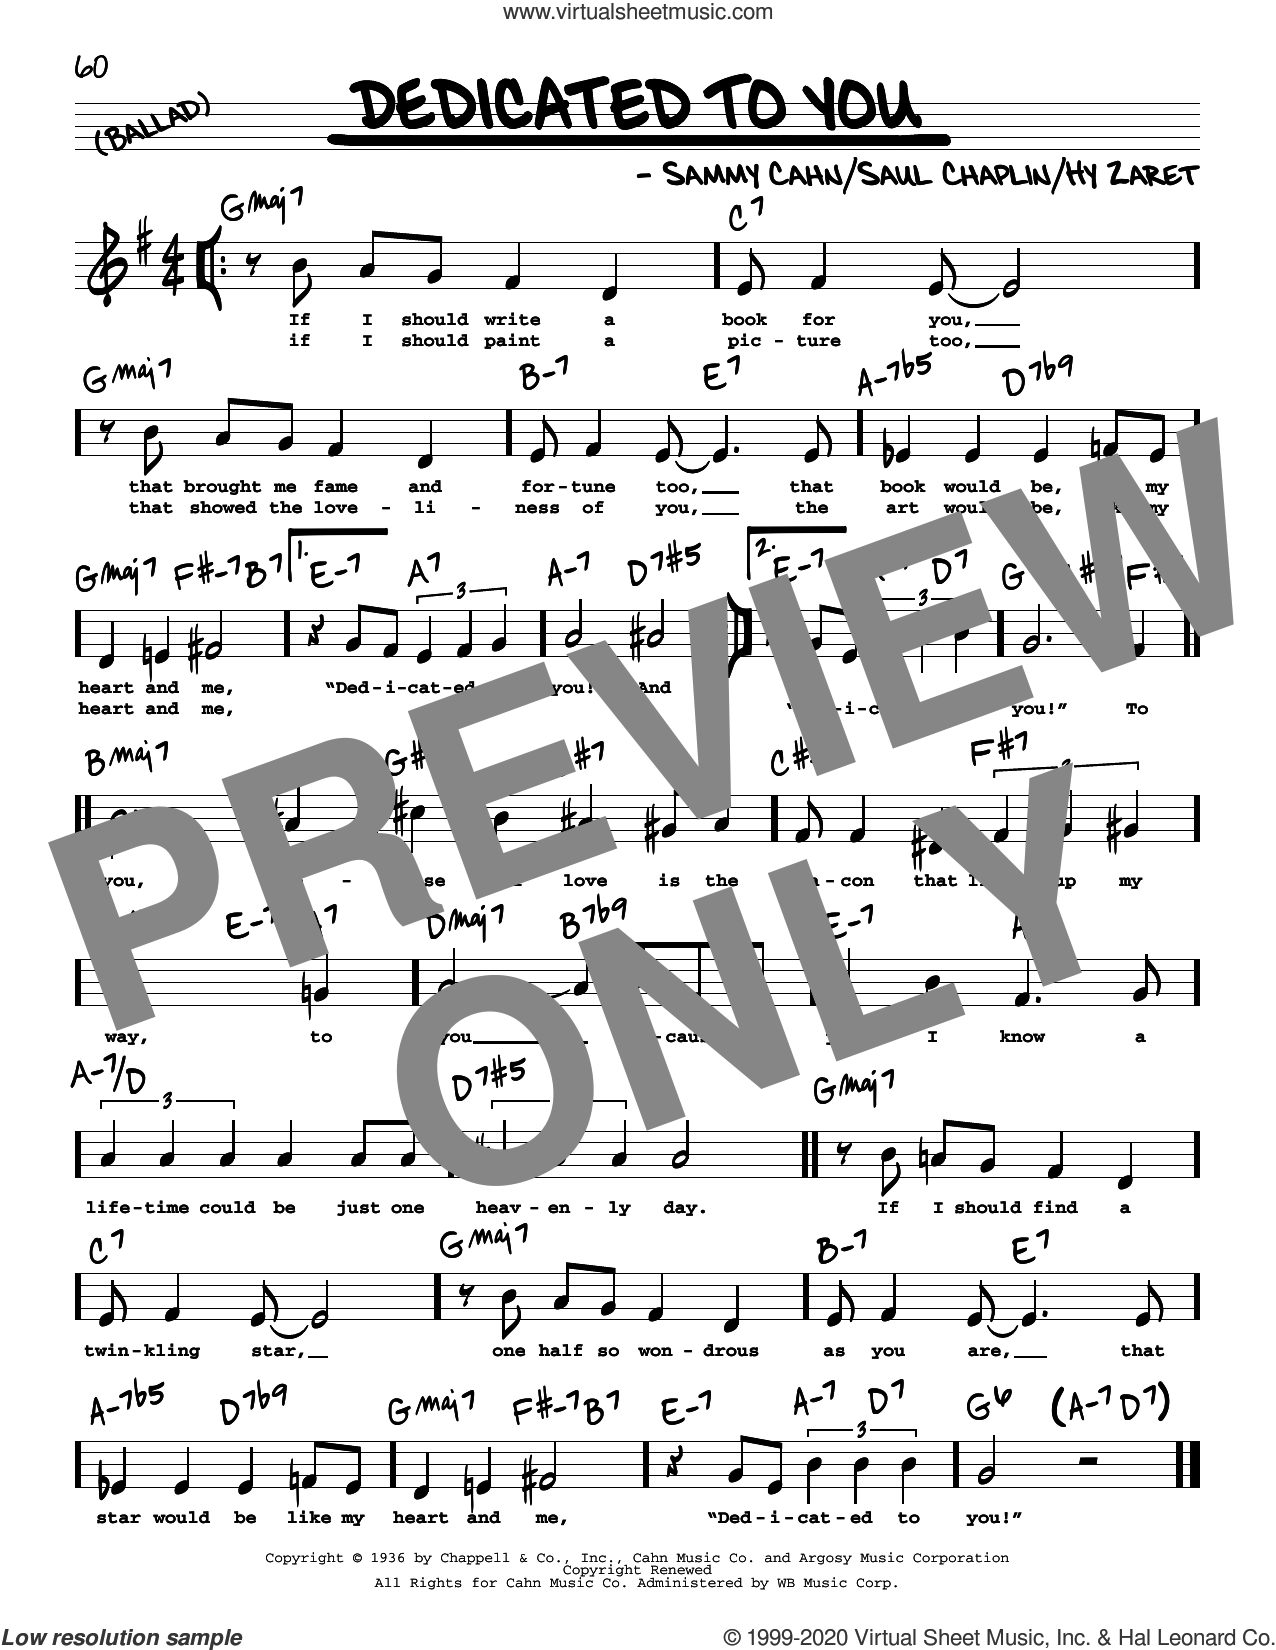 Dedicated To You (High Voice) sheet music for voice and other instruments (high voice) by Sammy Cahn, Hy Zaret and Saul Chaplin, intermediate skill level